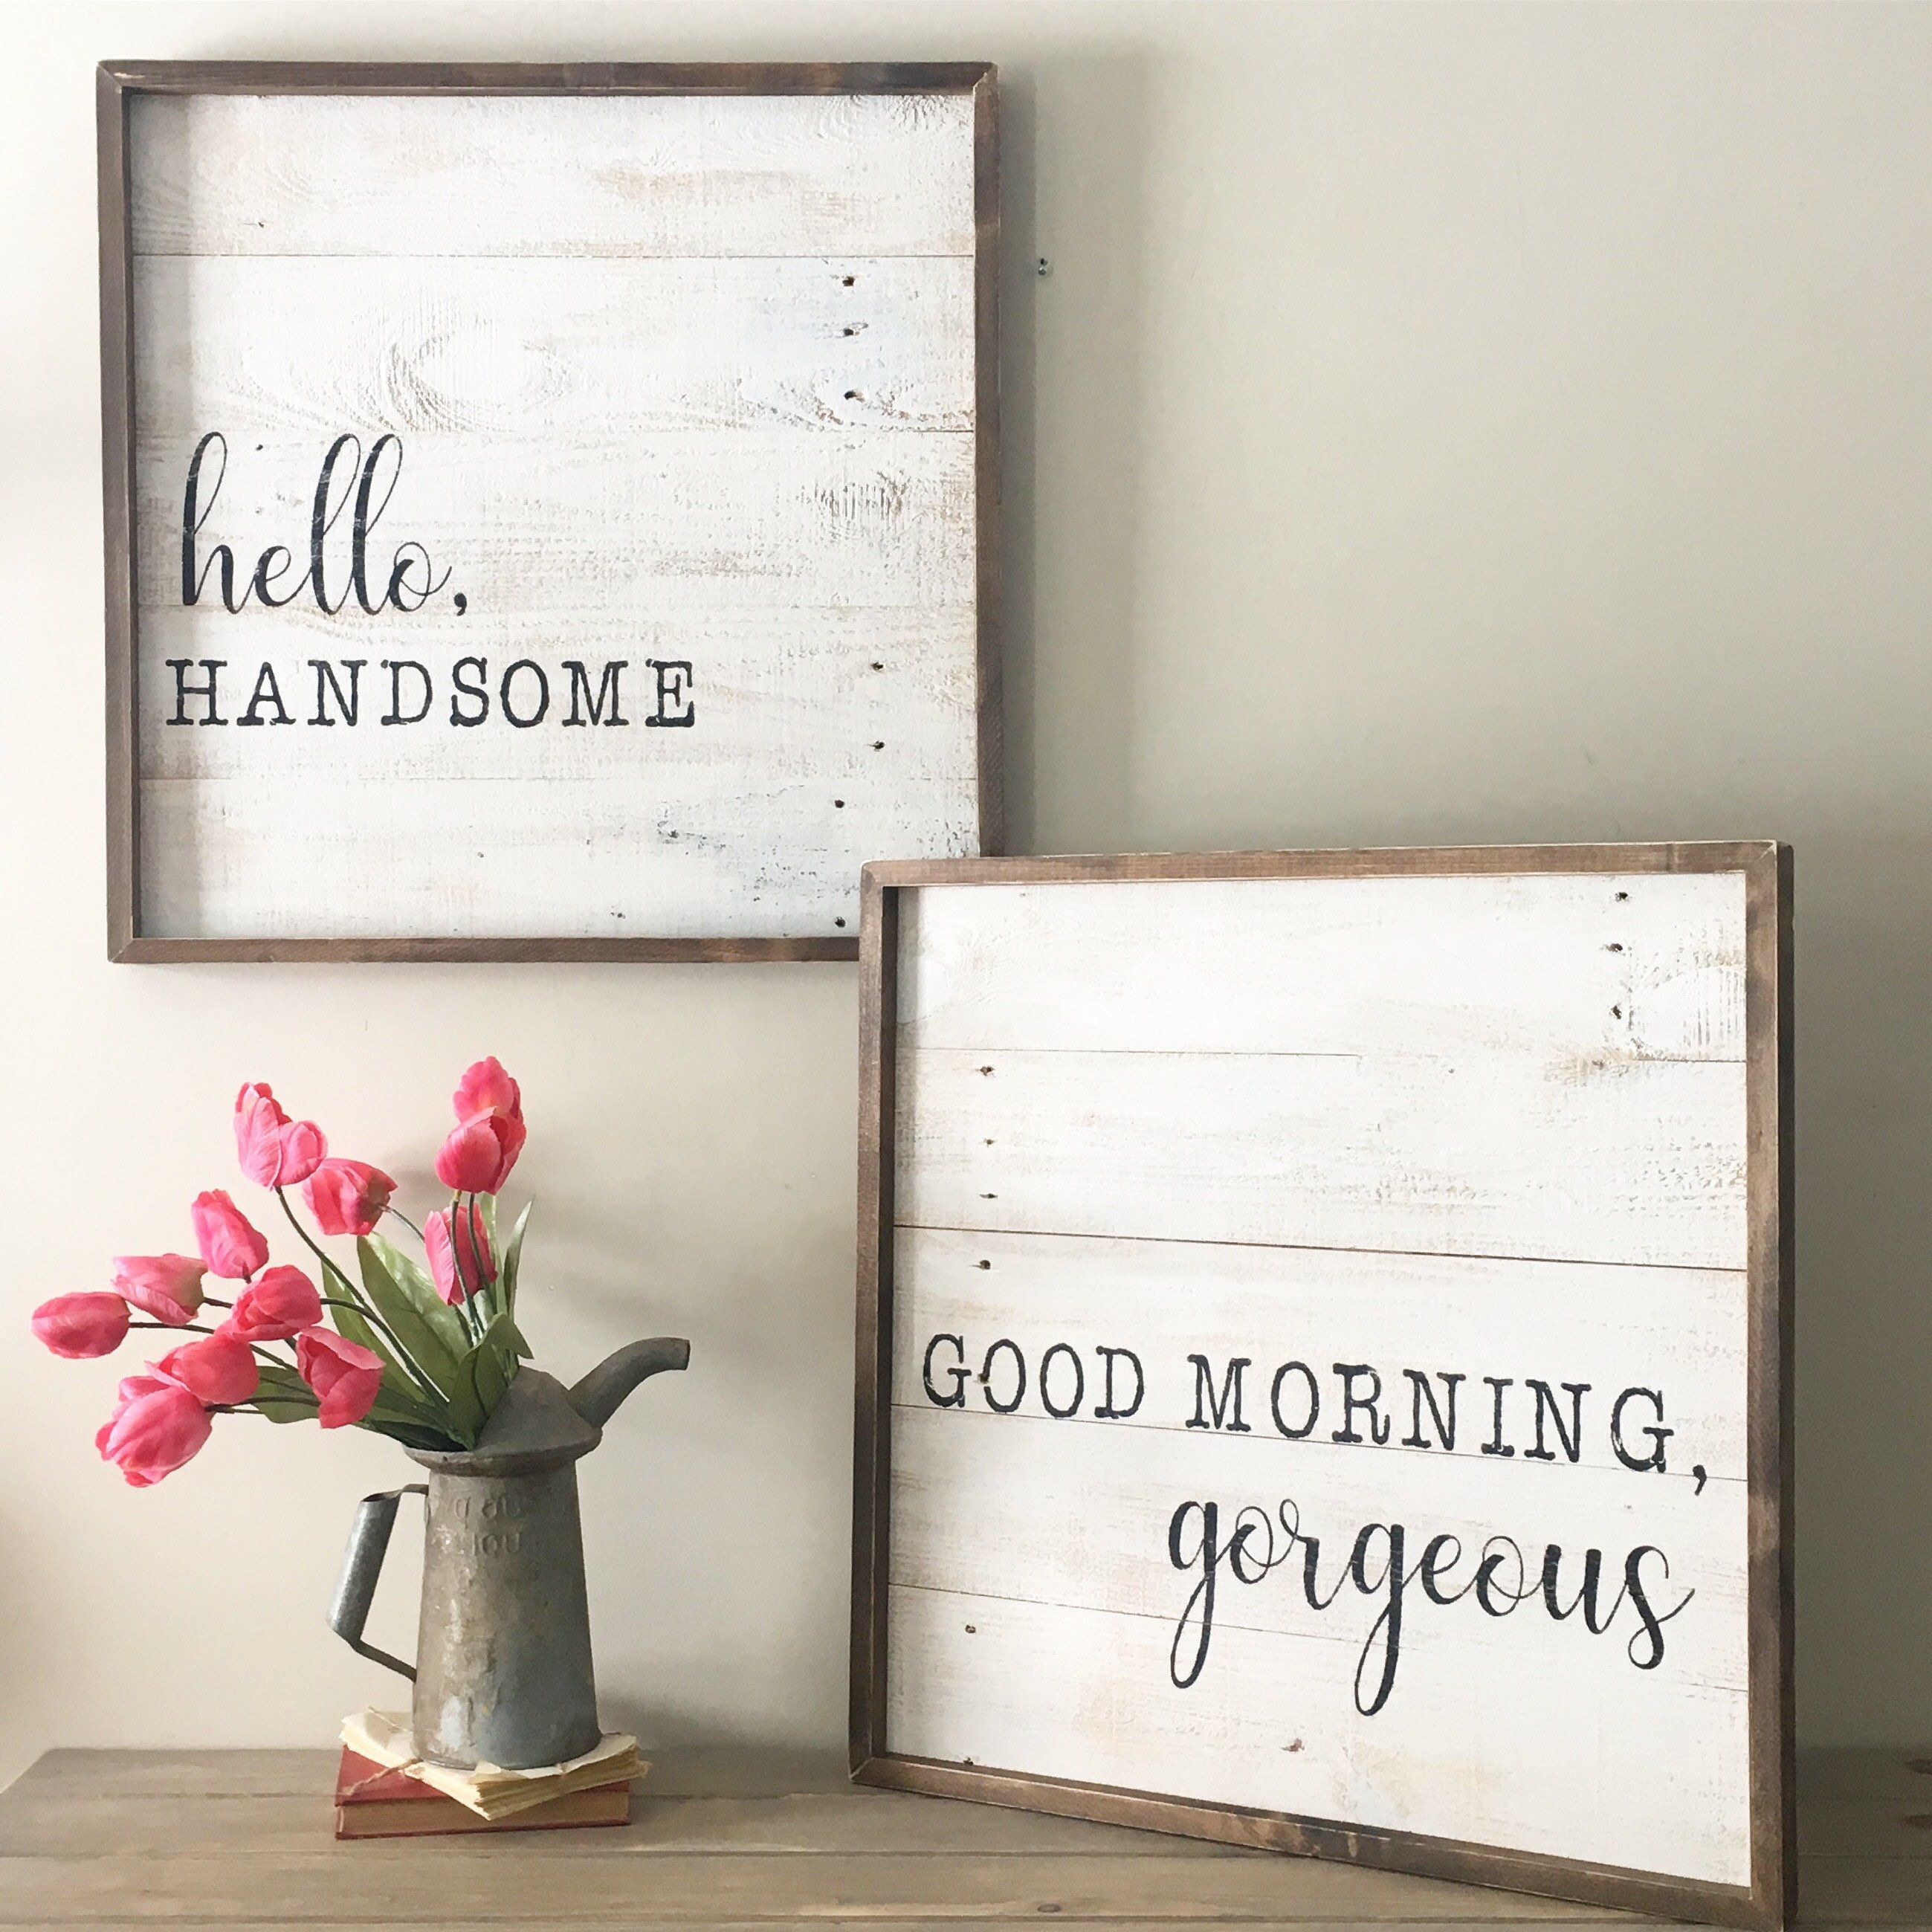 Good Morning Gorgeous Sign Hello Handsome Sign Reclaimed Wood Sign His And Hers Framed Sign Romantic Bedroom Decor Kids Bedroom Decor Good Morning Gorgeous